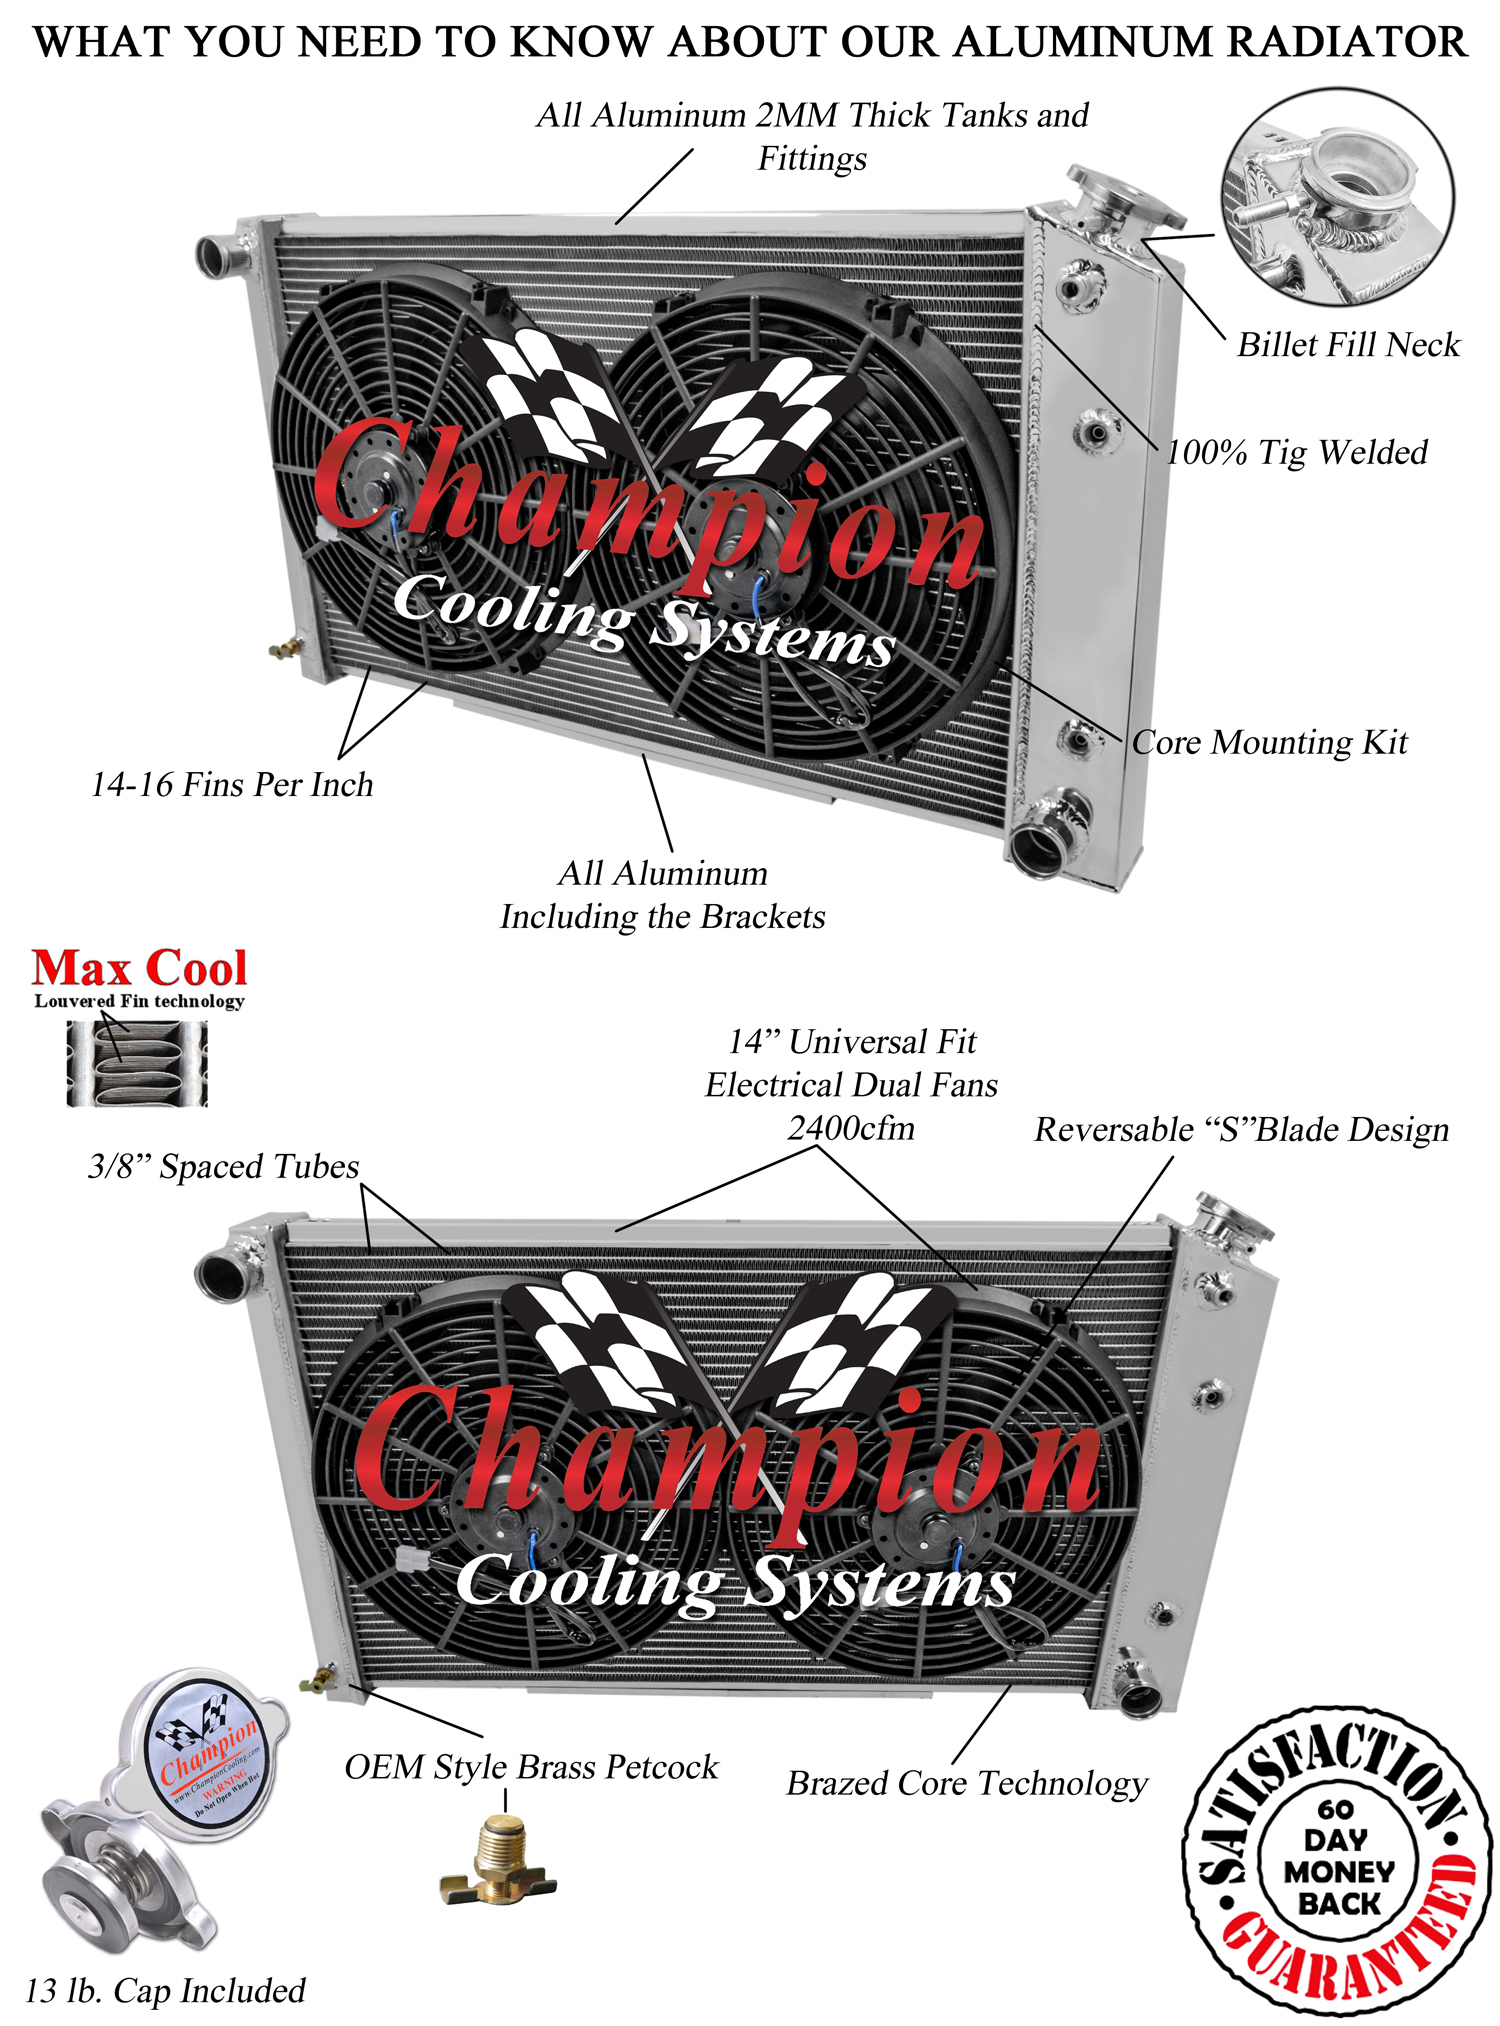 https://www.championcooling.com/photos/Photos%20White/With%20Fans/Combos/161/161_Combo017.jpg